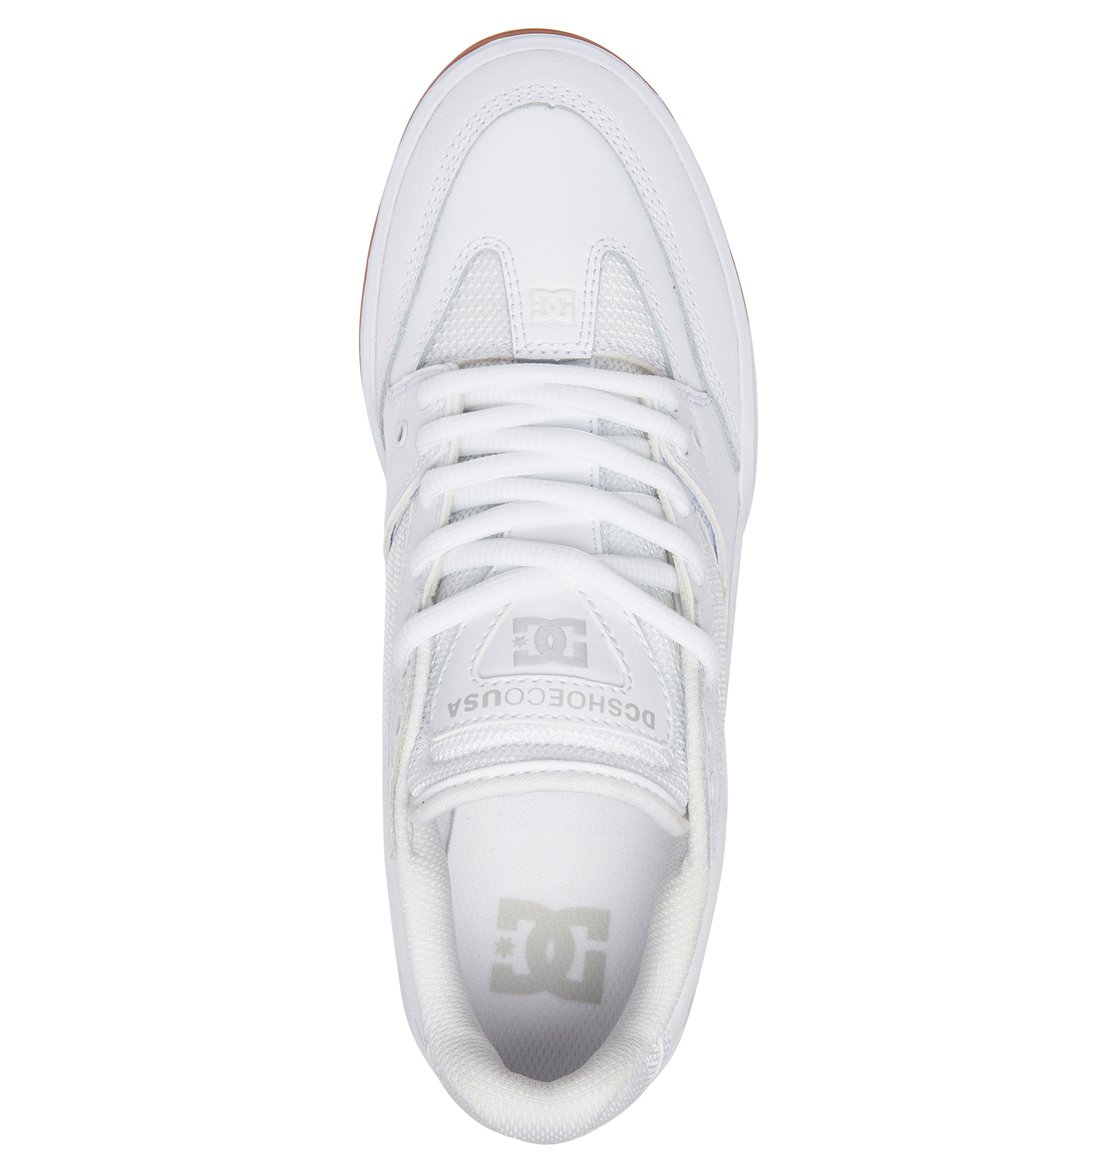 DC-Shoes-Maswell-Baskets-pour-Homme-ADYS100473 miniature 8